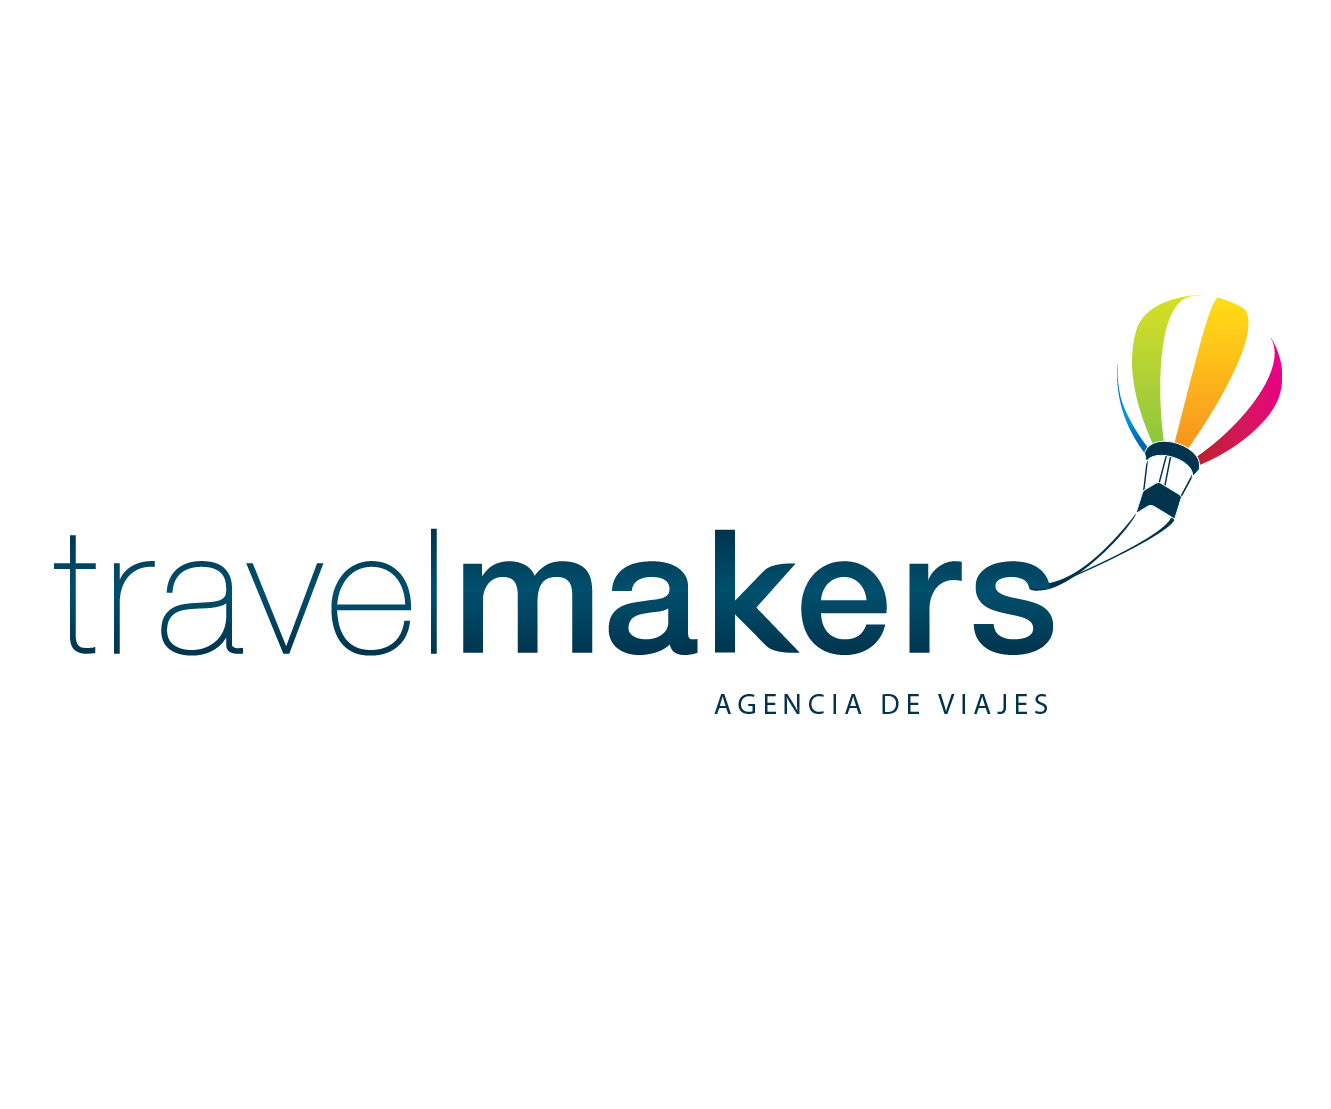 Travelmakers